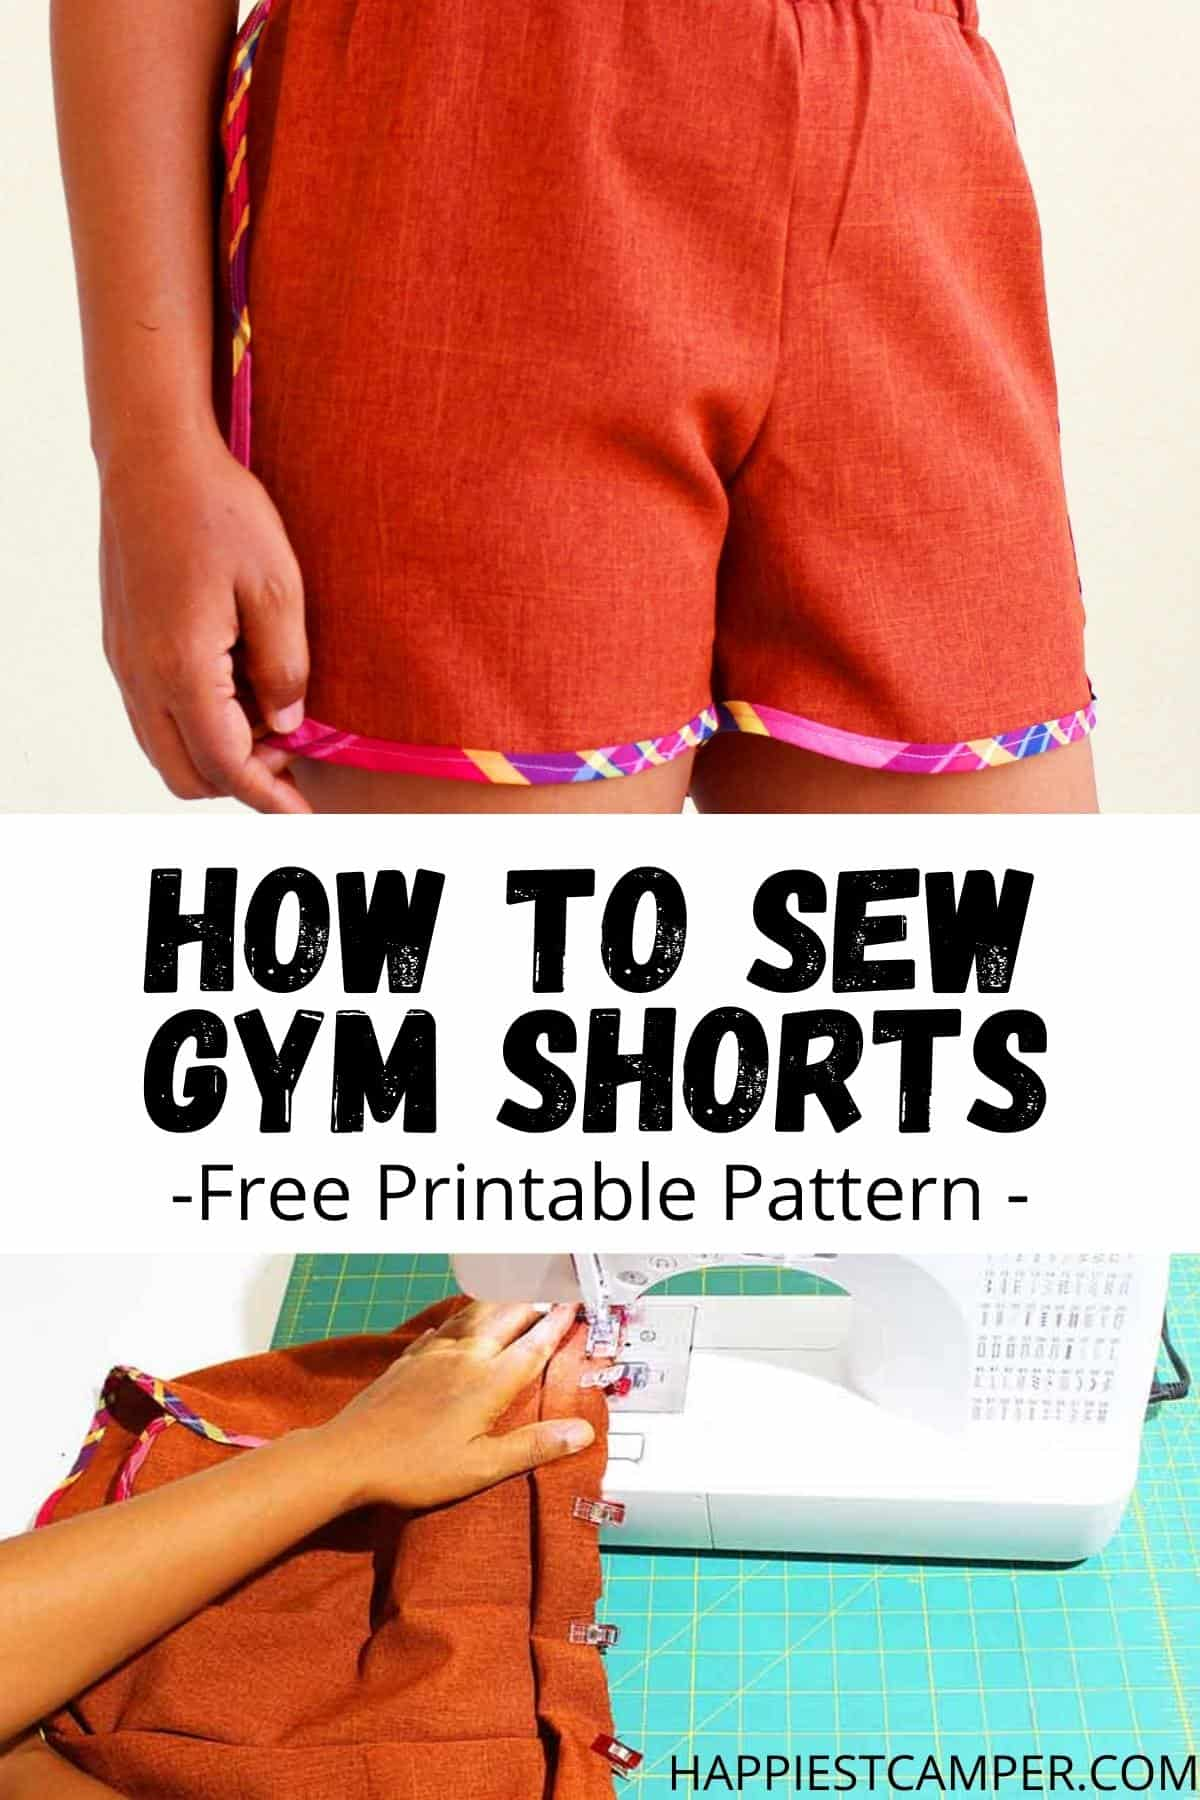 How To Sew Gym Shorts - Free Printable Pattern